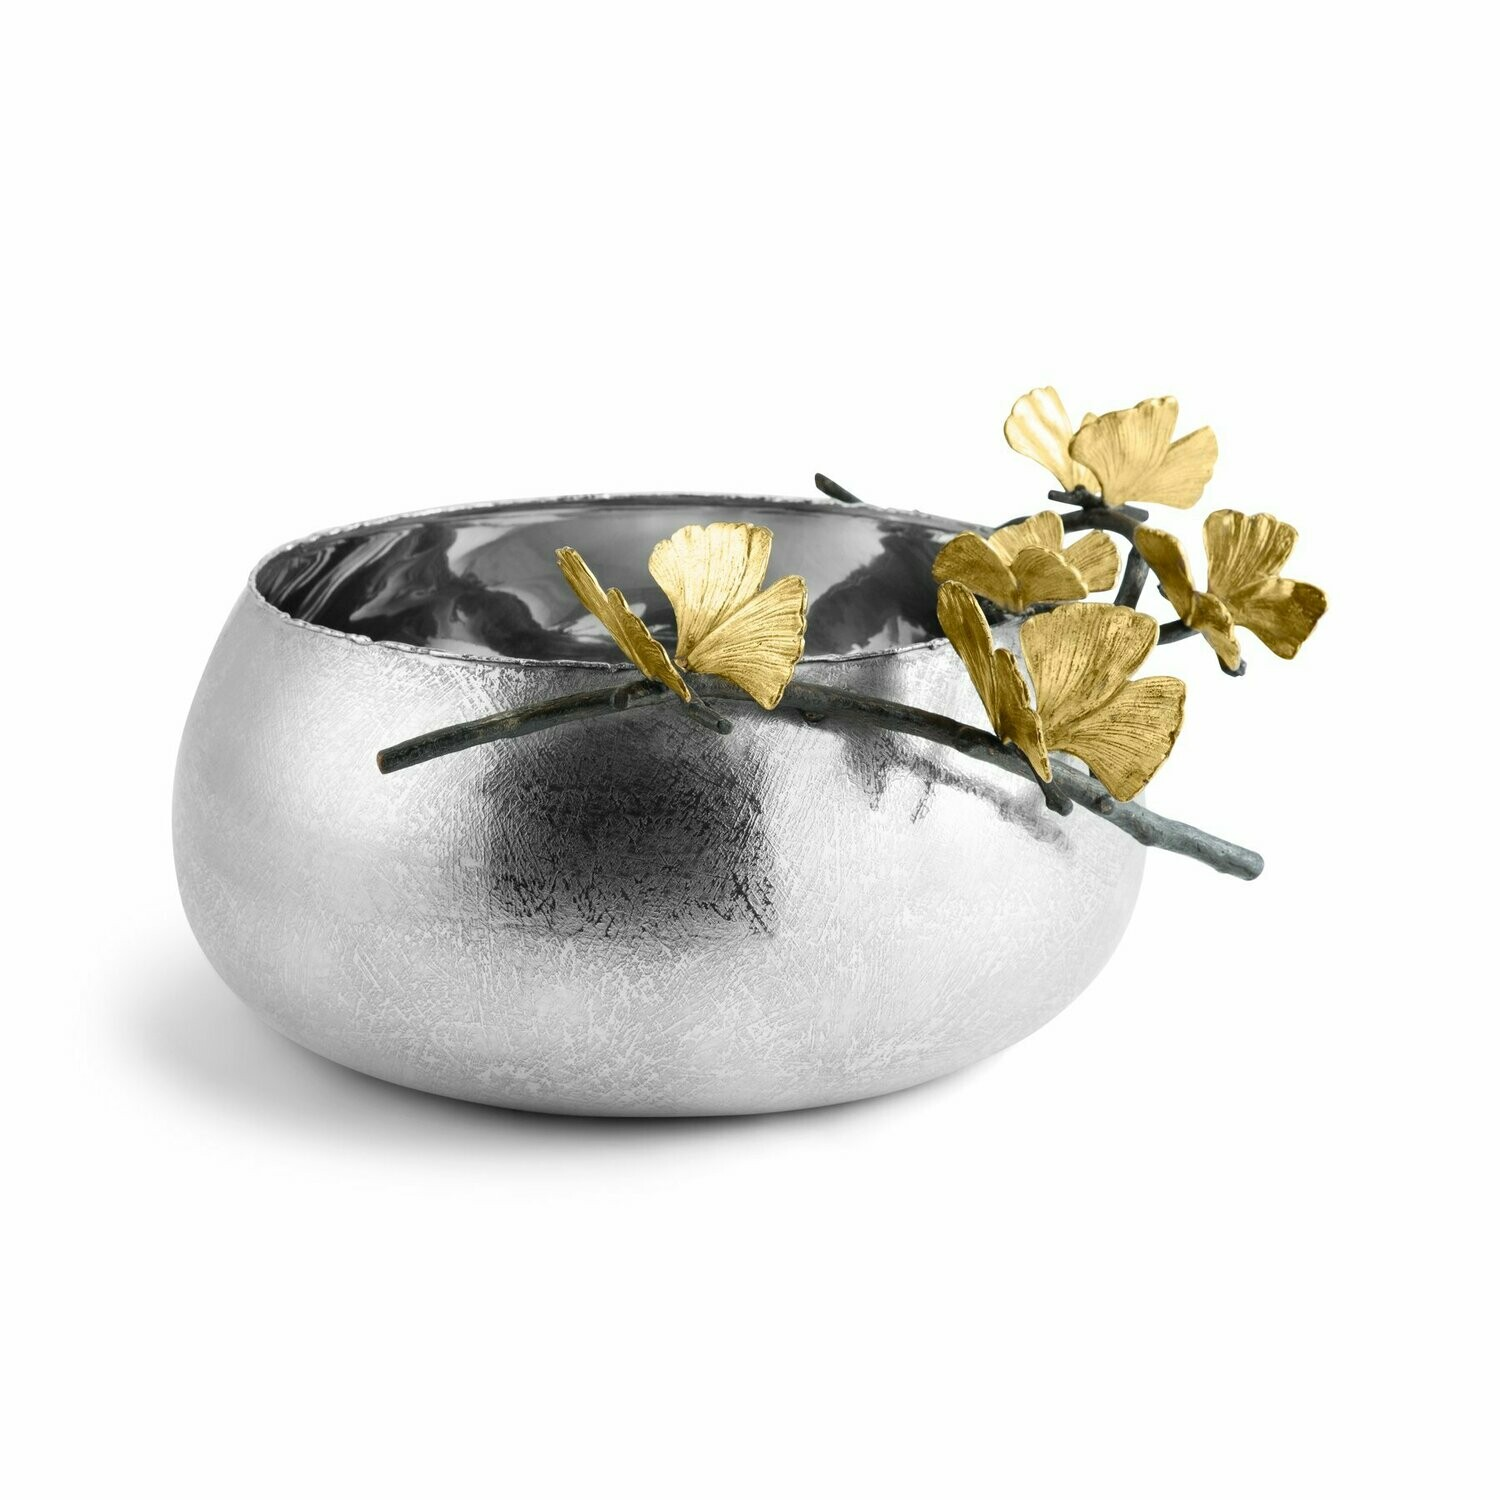 Butterfly Gingko Bowl by Michael Aram